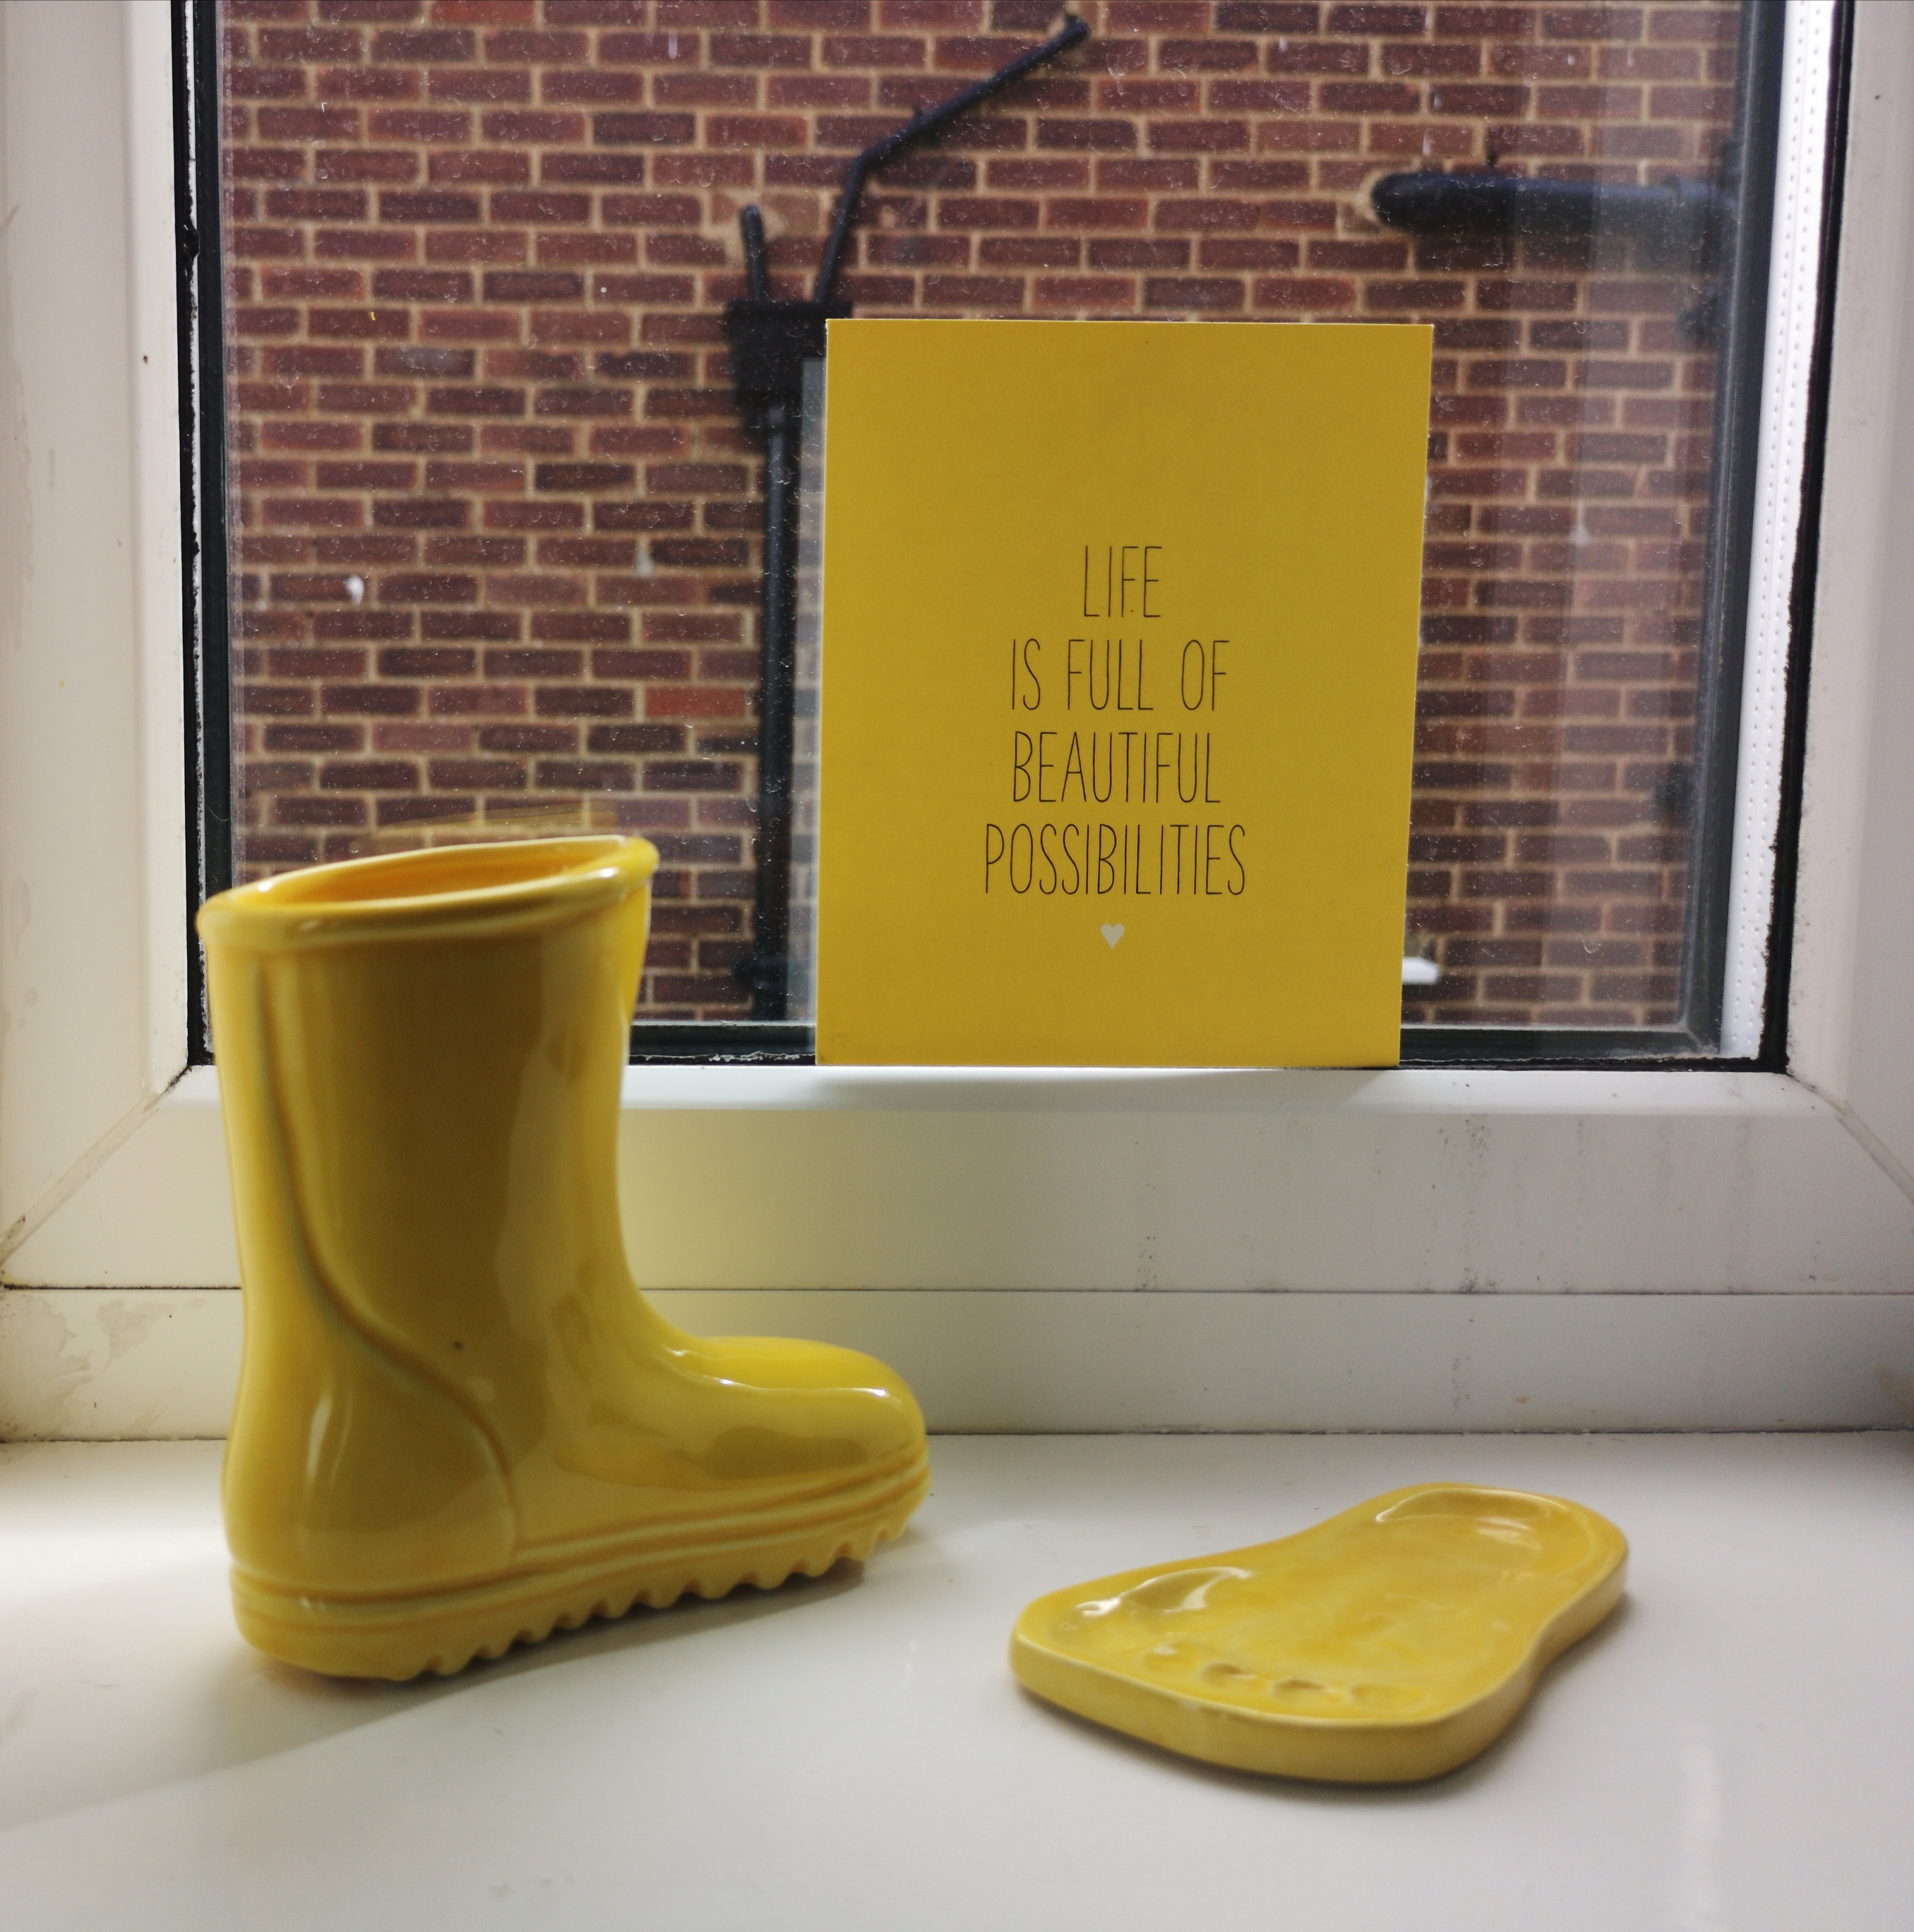 Yellow themed objects placed on a windowsill. Yellow Ceramic boot and footprint. And a yellow poster reading 'Life is full of beautiful possibilities.